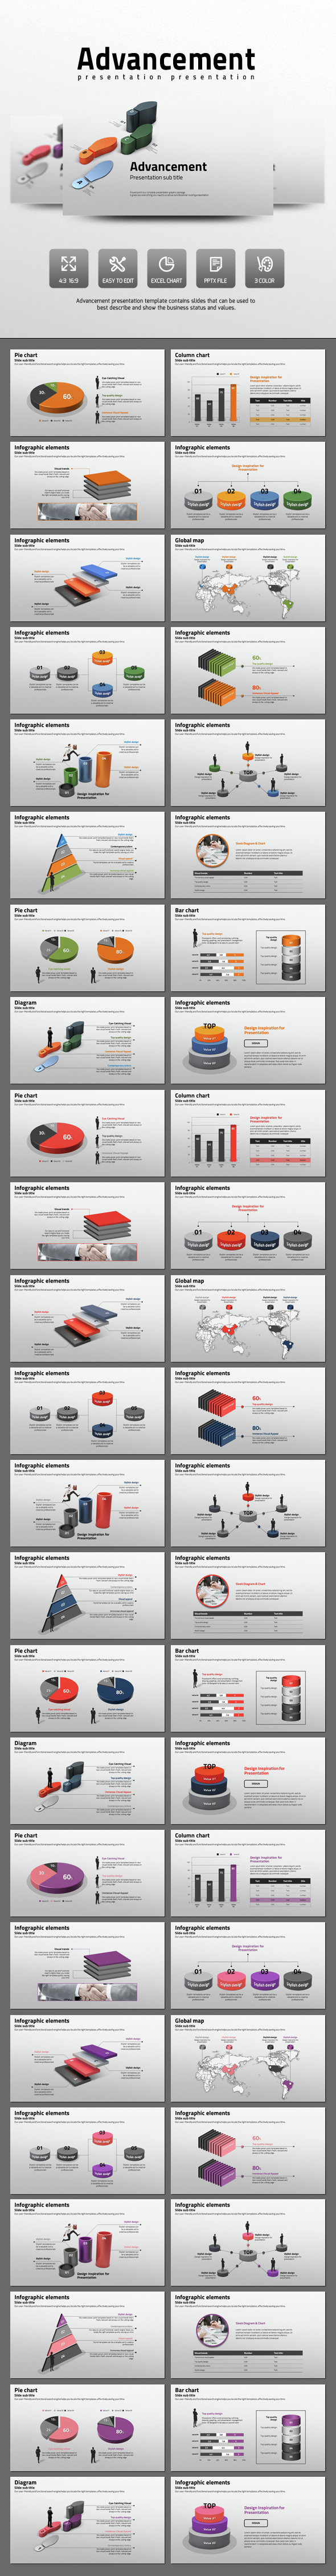 Advancement - PowerPoint Templates Presentation Templates